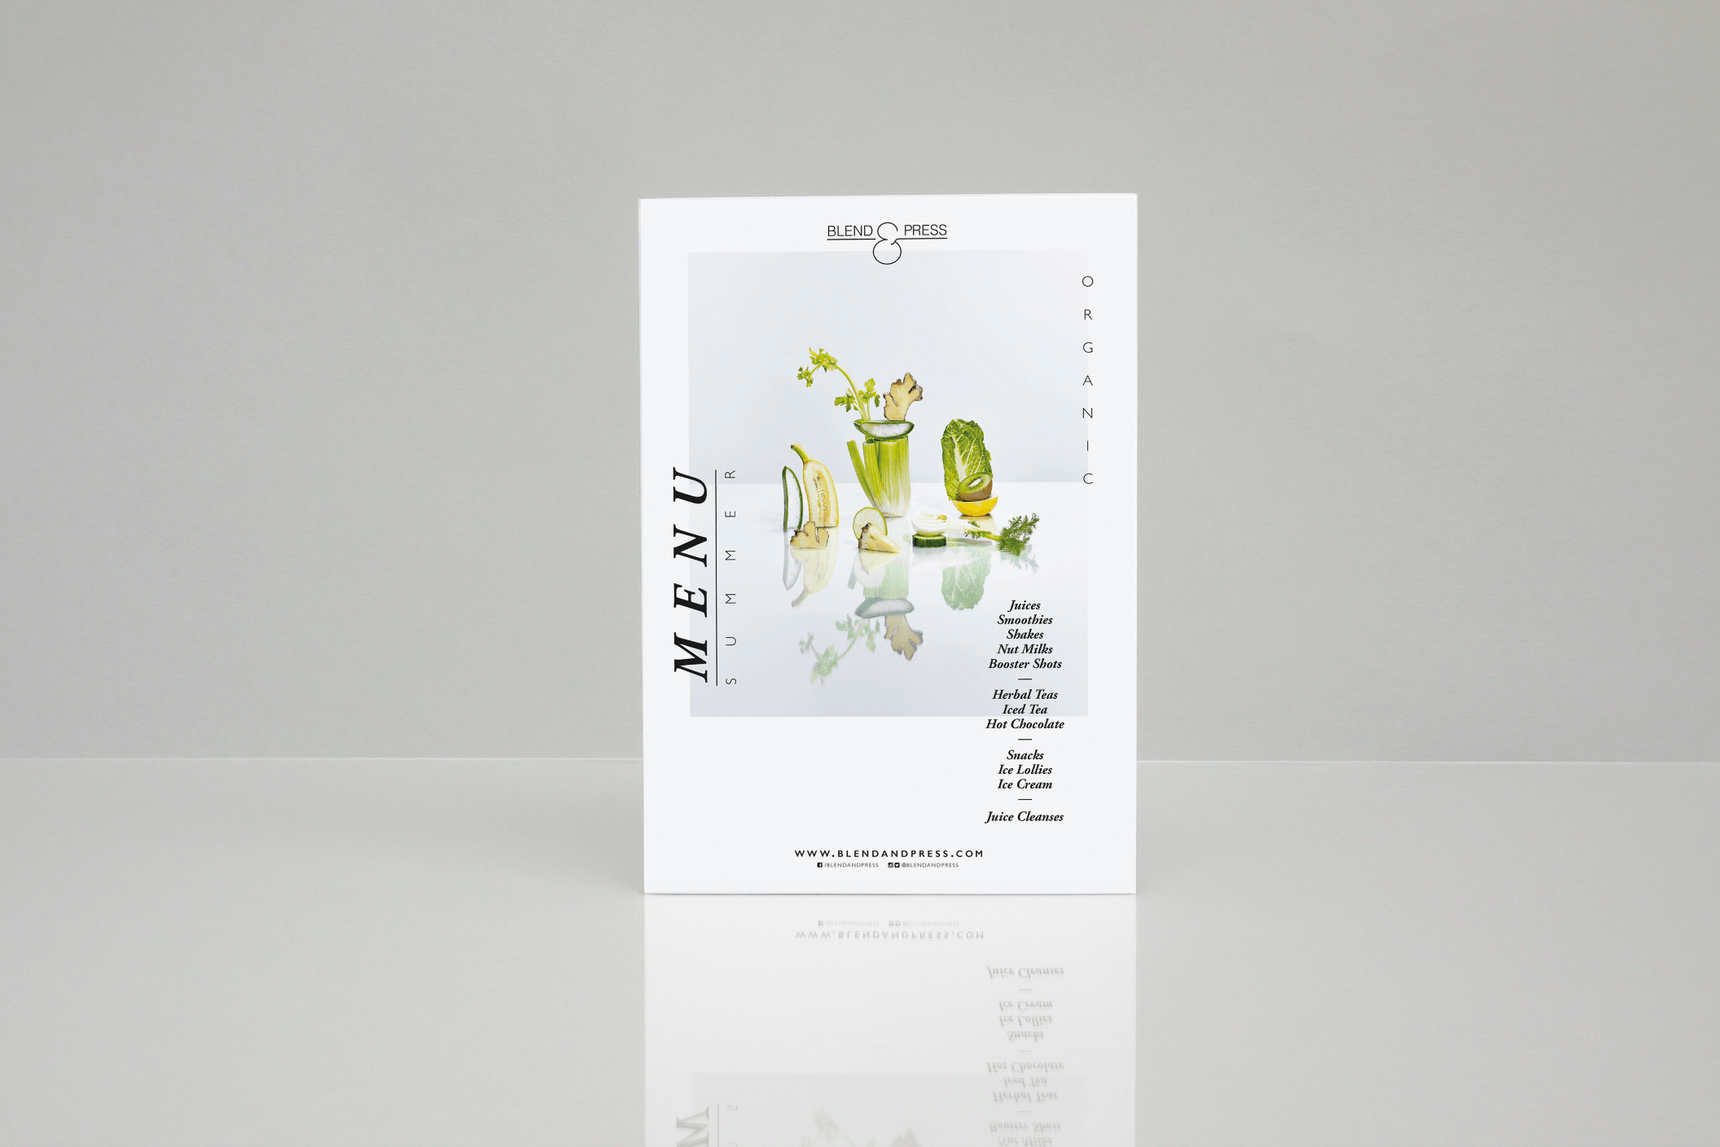 Cover Design of Menu Card for health food brand blend and press